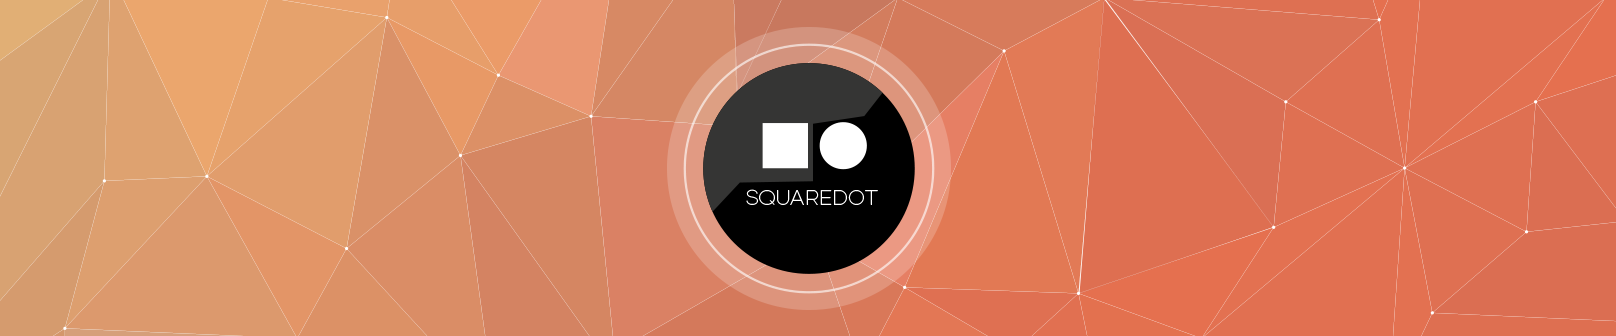 Squaredot Content Marketing and SEO